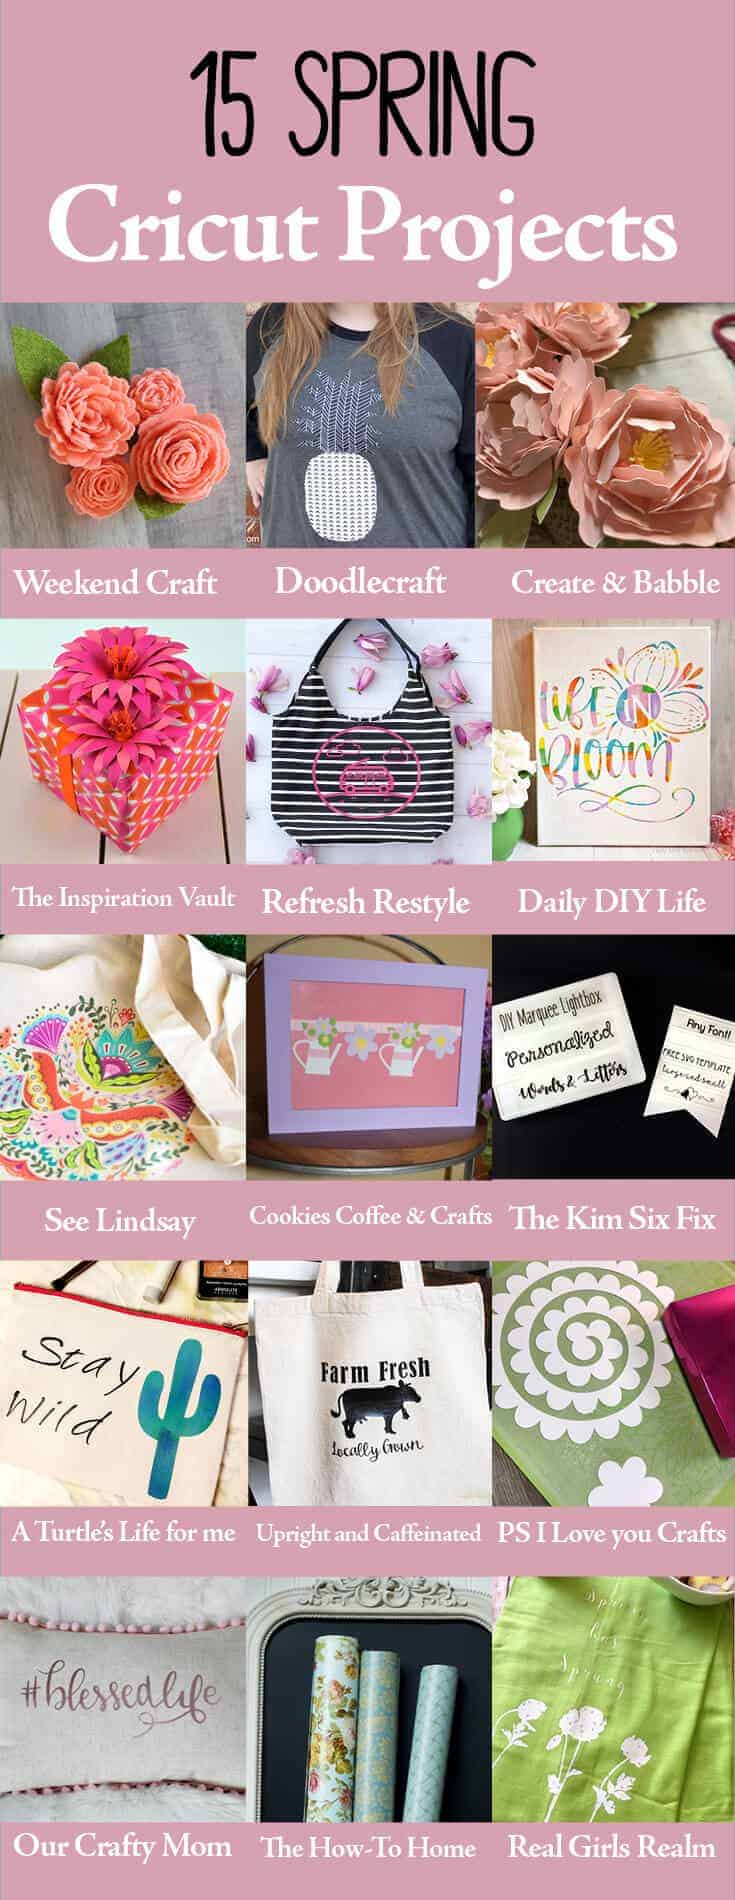 Collage of 15 spring projects made with a Cricut cutting machine